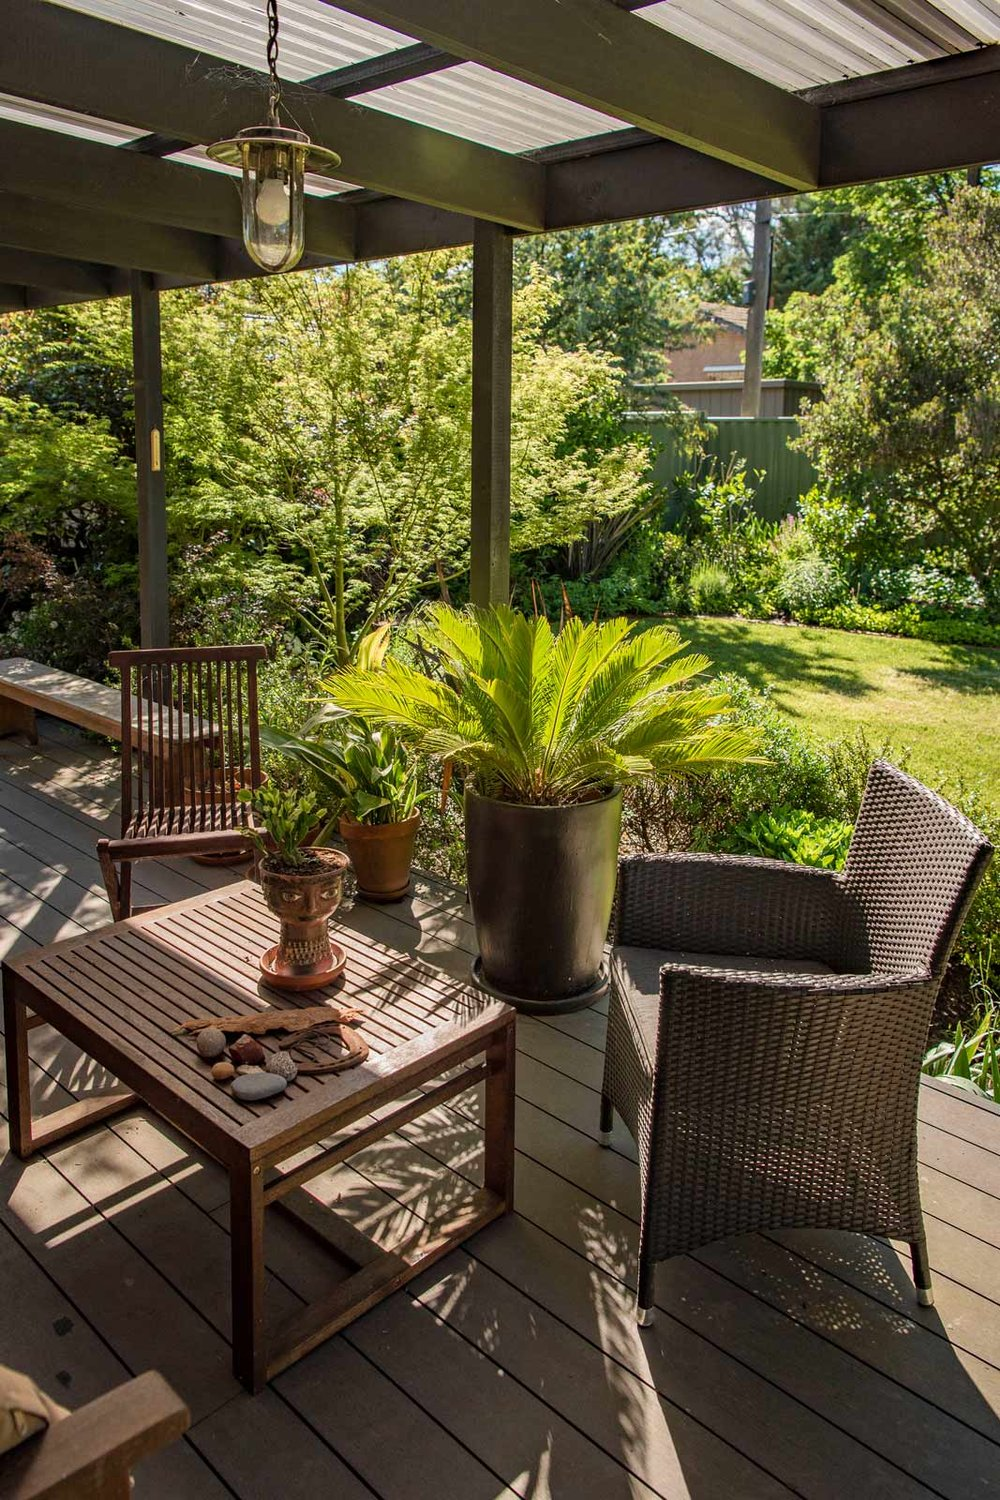 undercover deck, outdoor living overlooking private leafy garden and lawn, cycad in pot, outdoor furniture  | Canberra Gardens